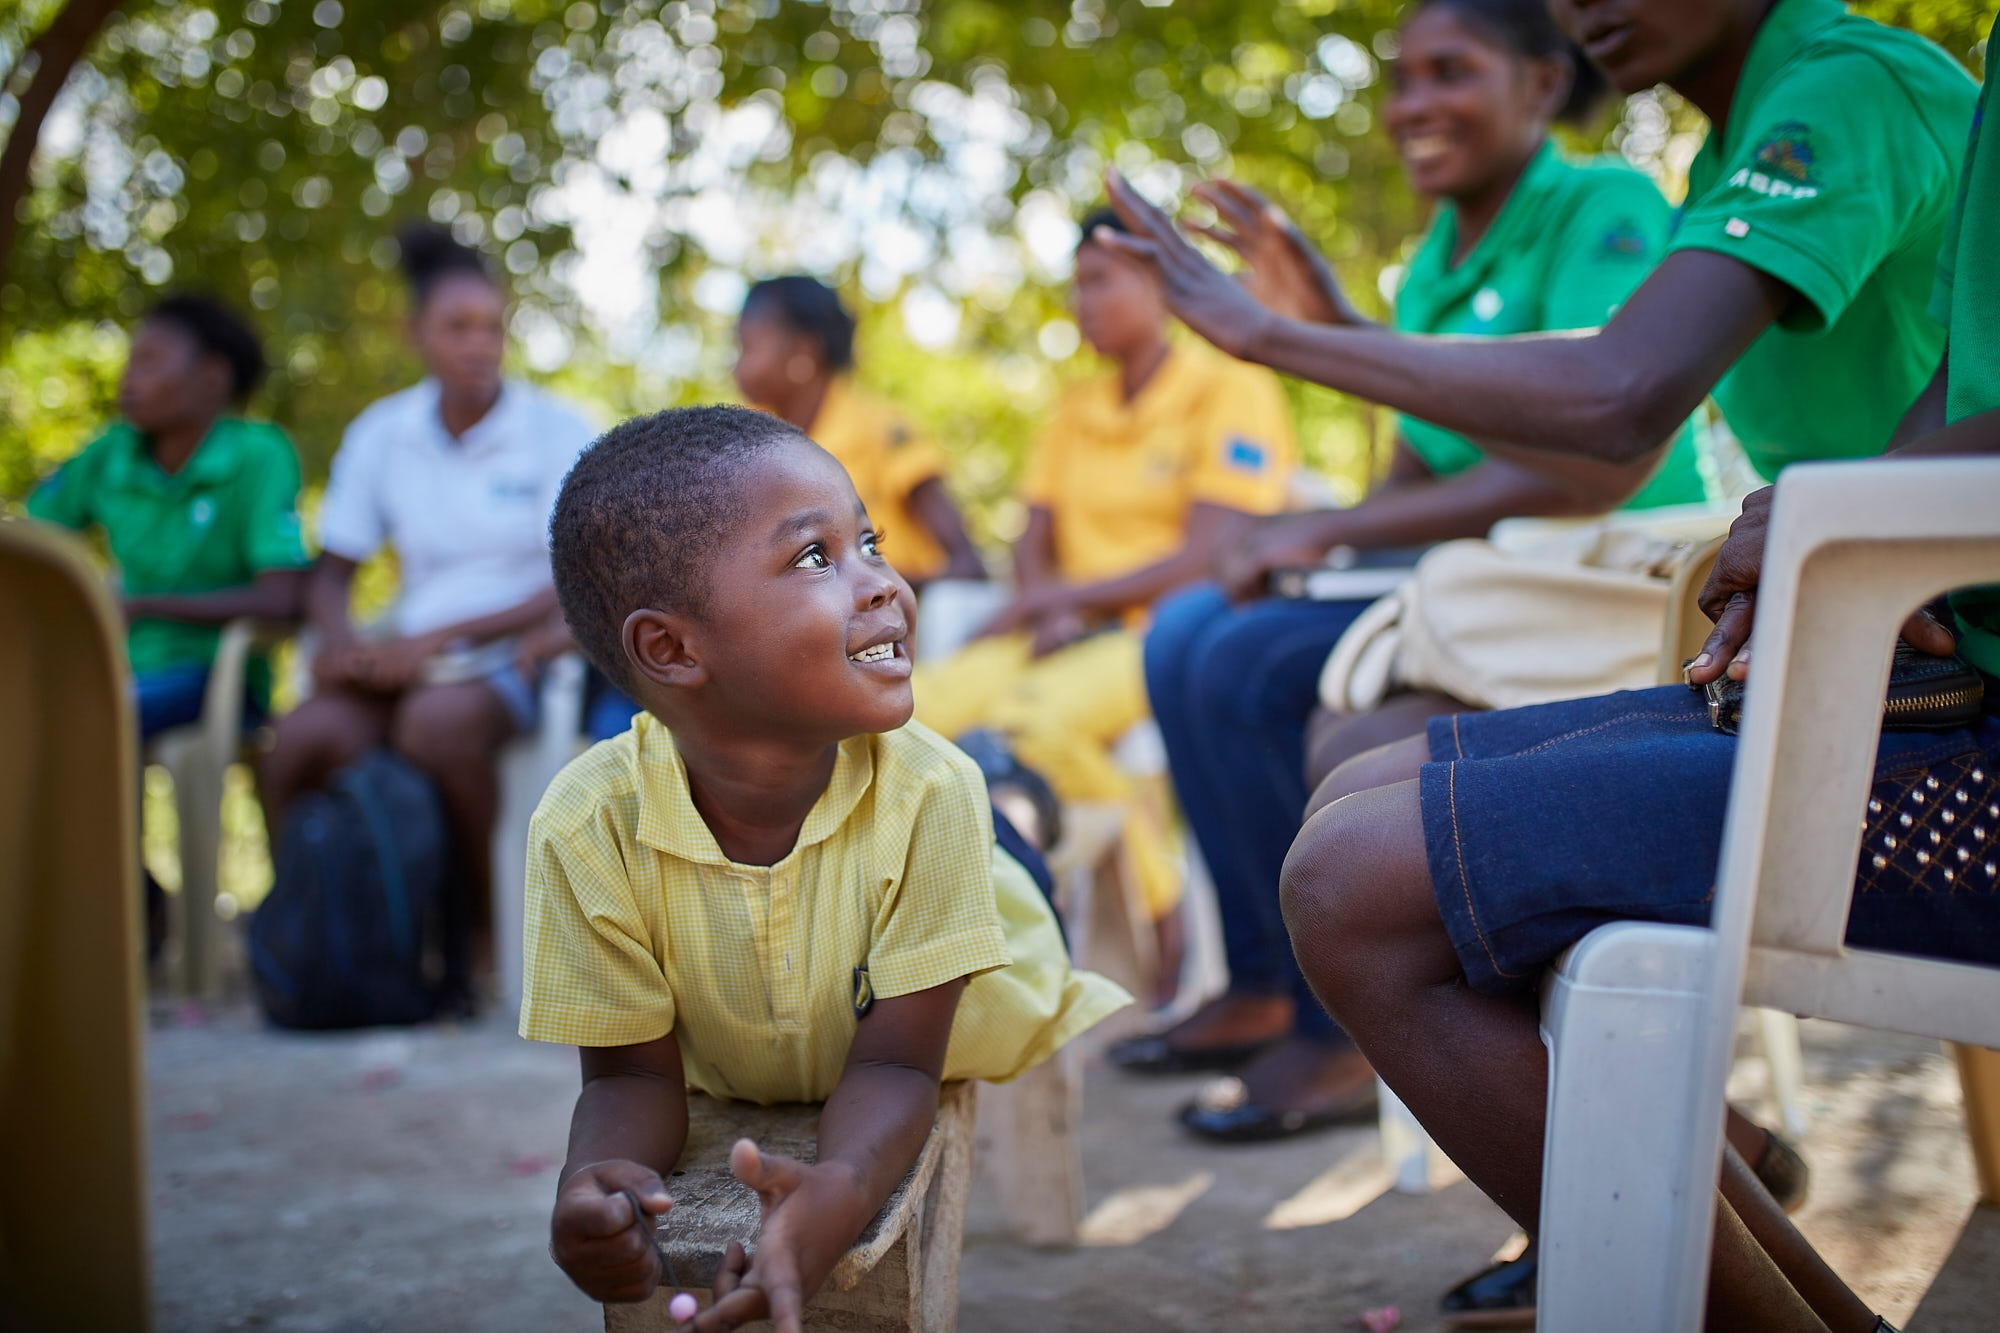 This child's mother is participating in training to become a lead nutrition volunteer in one of Action Against Hunger's community mother-to-mother support groups.